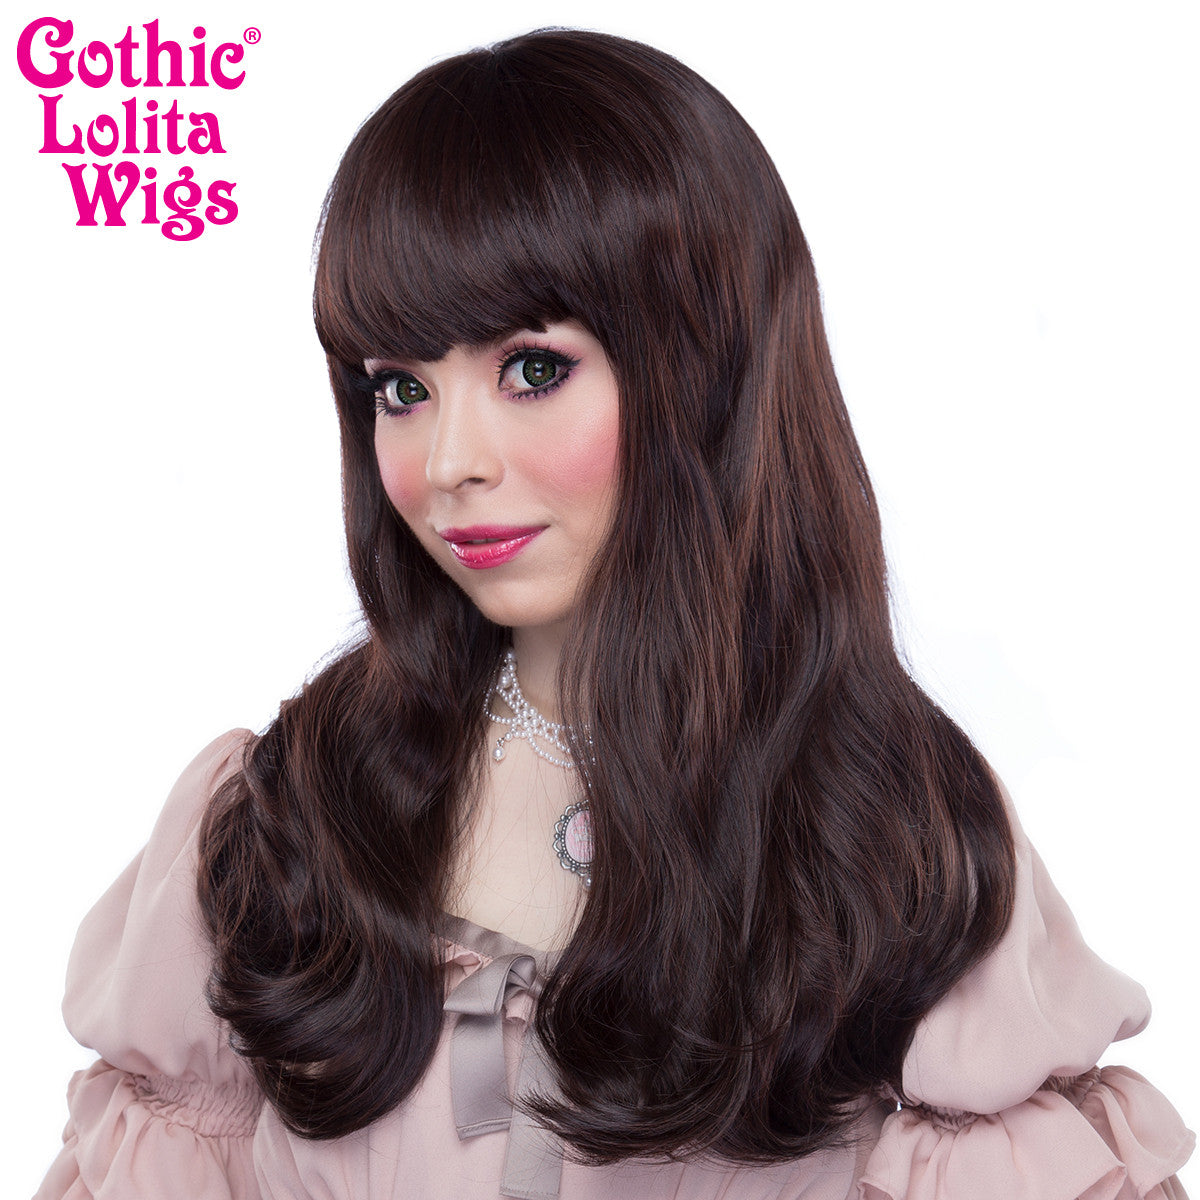 Gothic Lolita Wigs® <br> Straight Classic™ Collection - Dark Brown Mix -00033